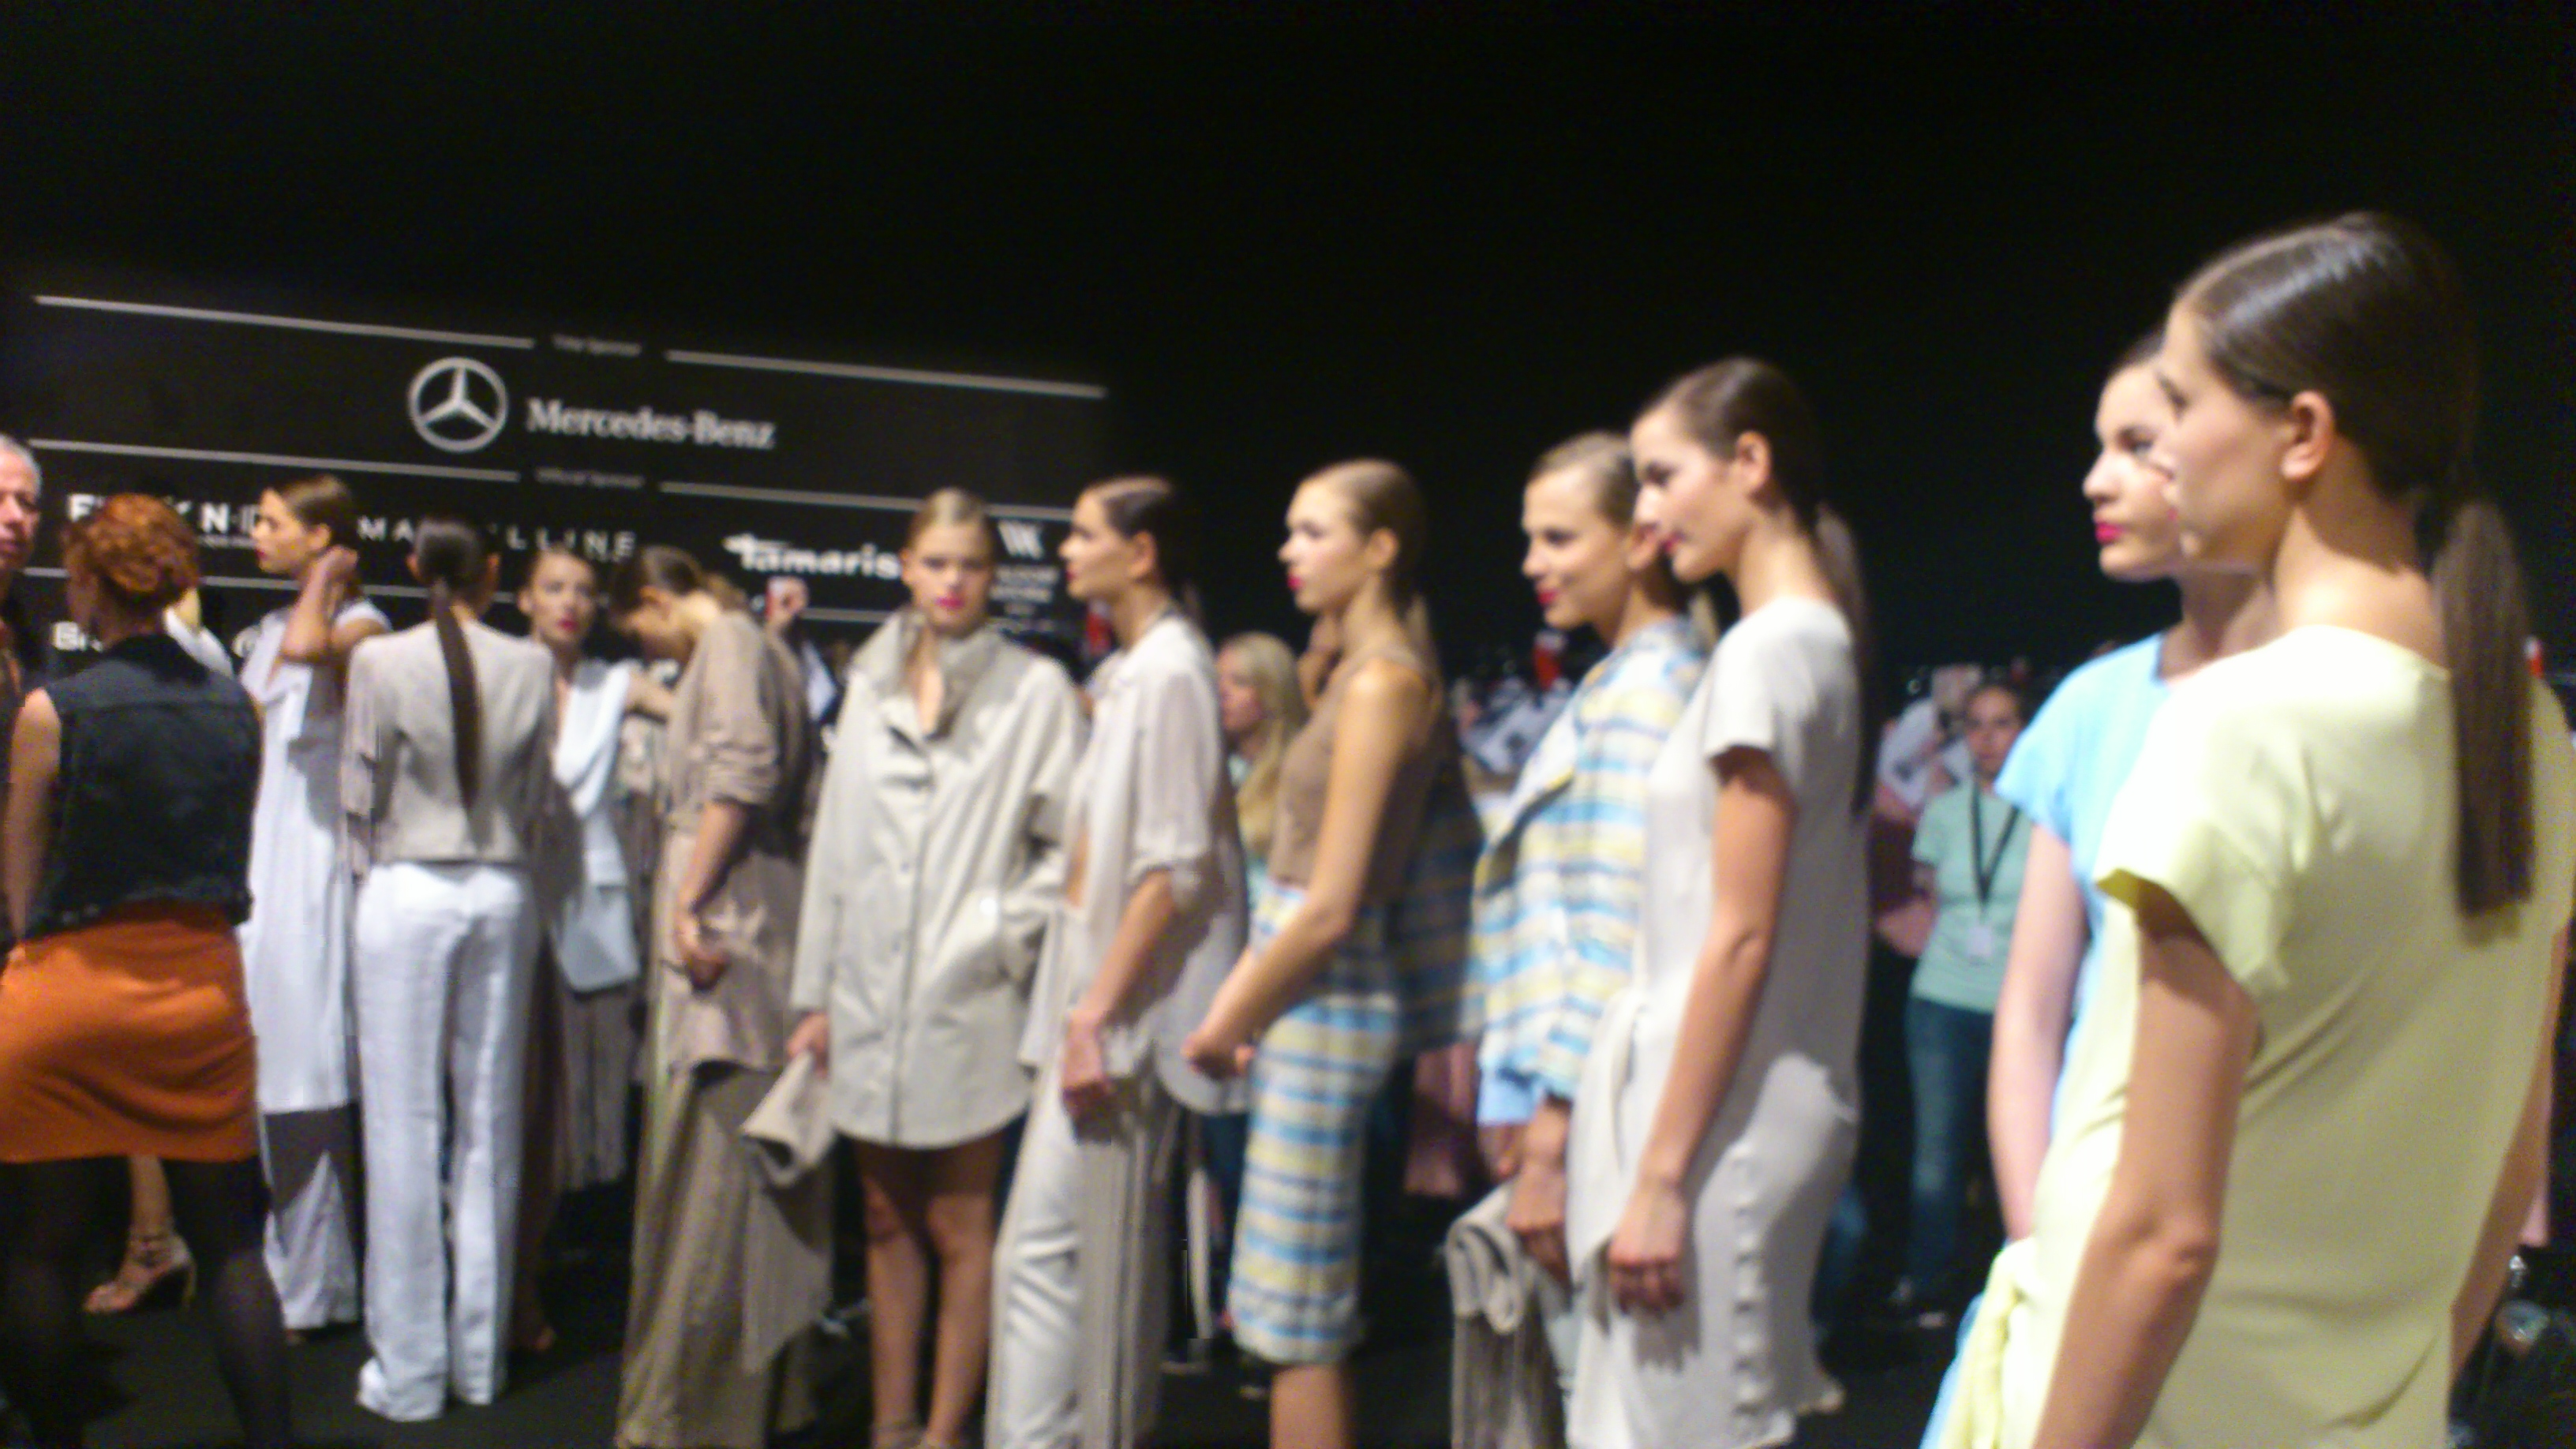 Sybille Vibrans works @ Fashion Week